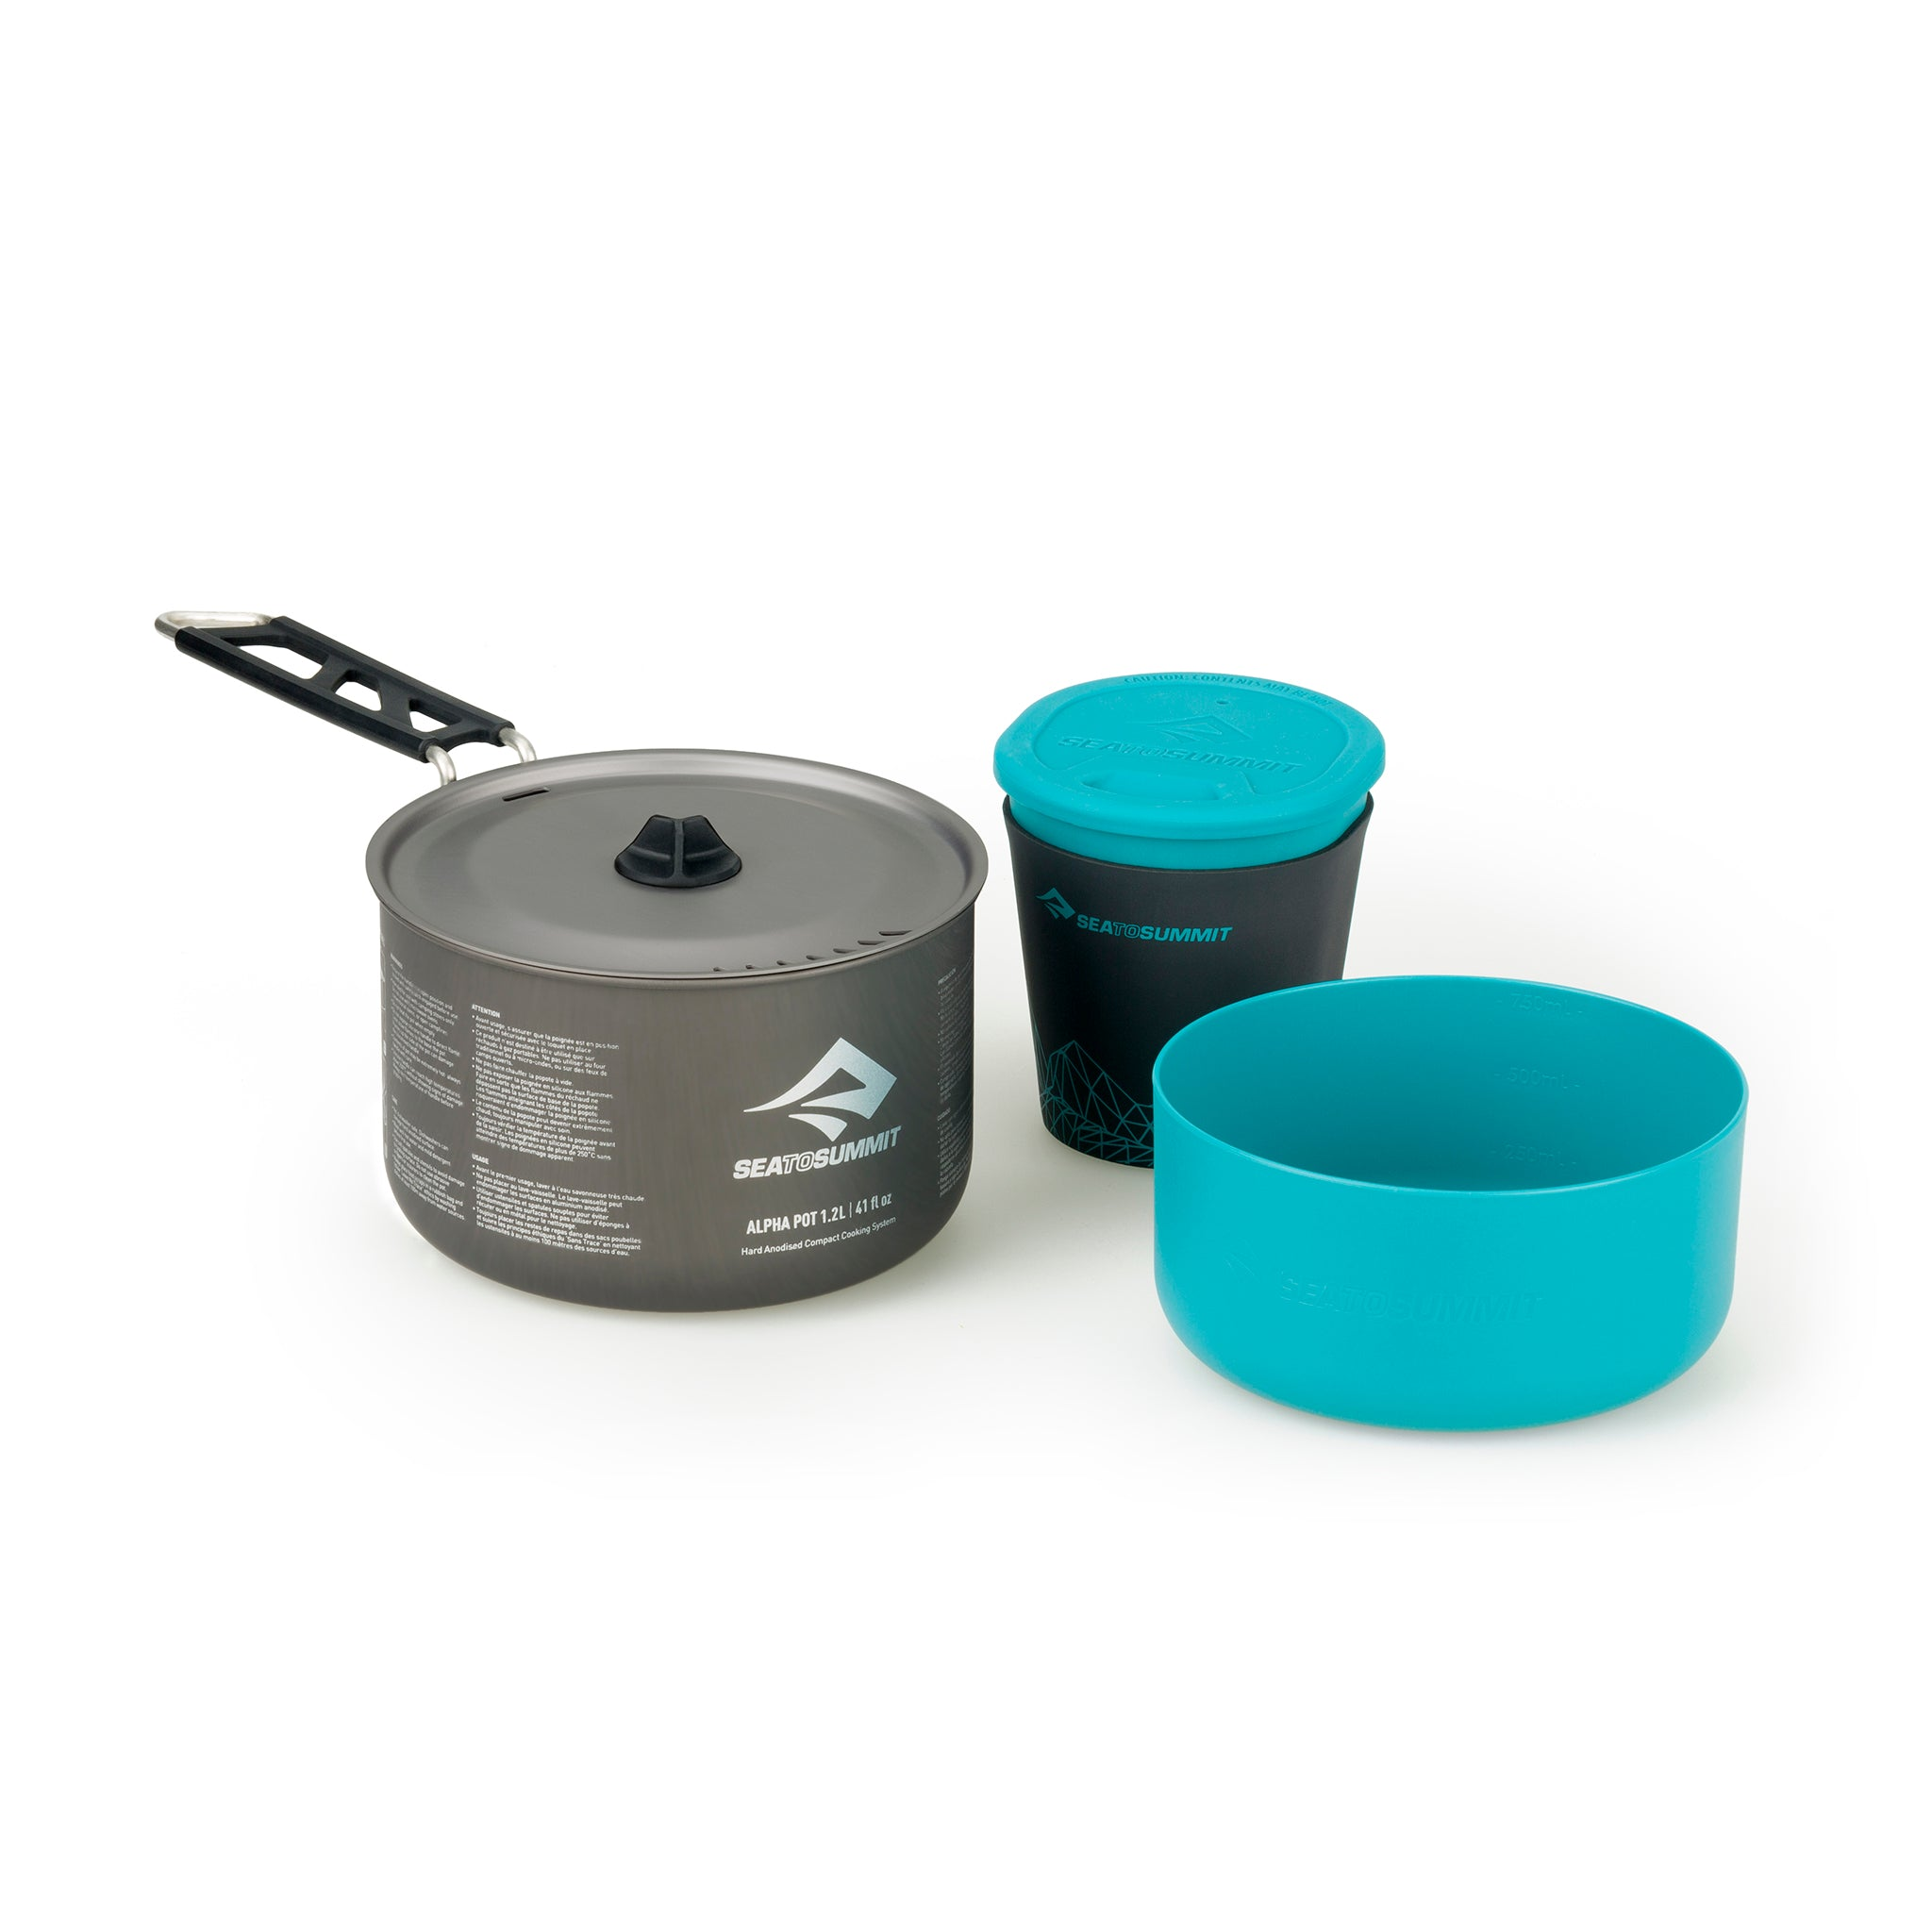 Alpha Cook Set 1.1 - 1.2L pot, 1 bowl, 1 cups _ lightweight backpacking cook set _ pot bowl cup _ one person